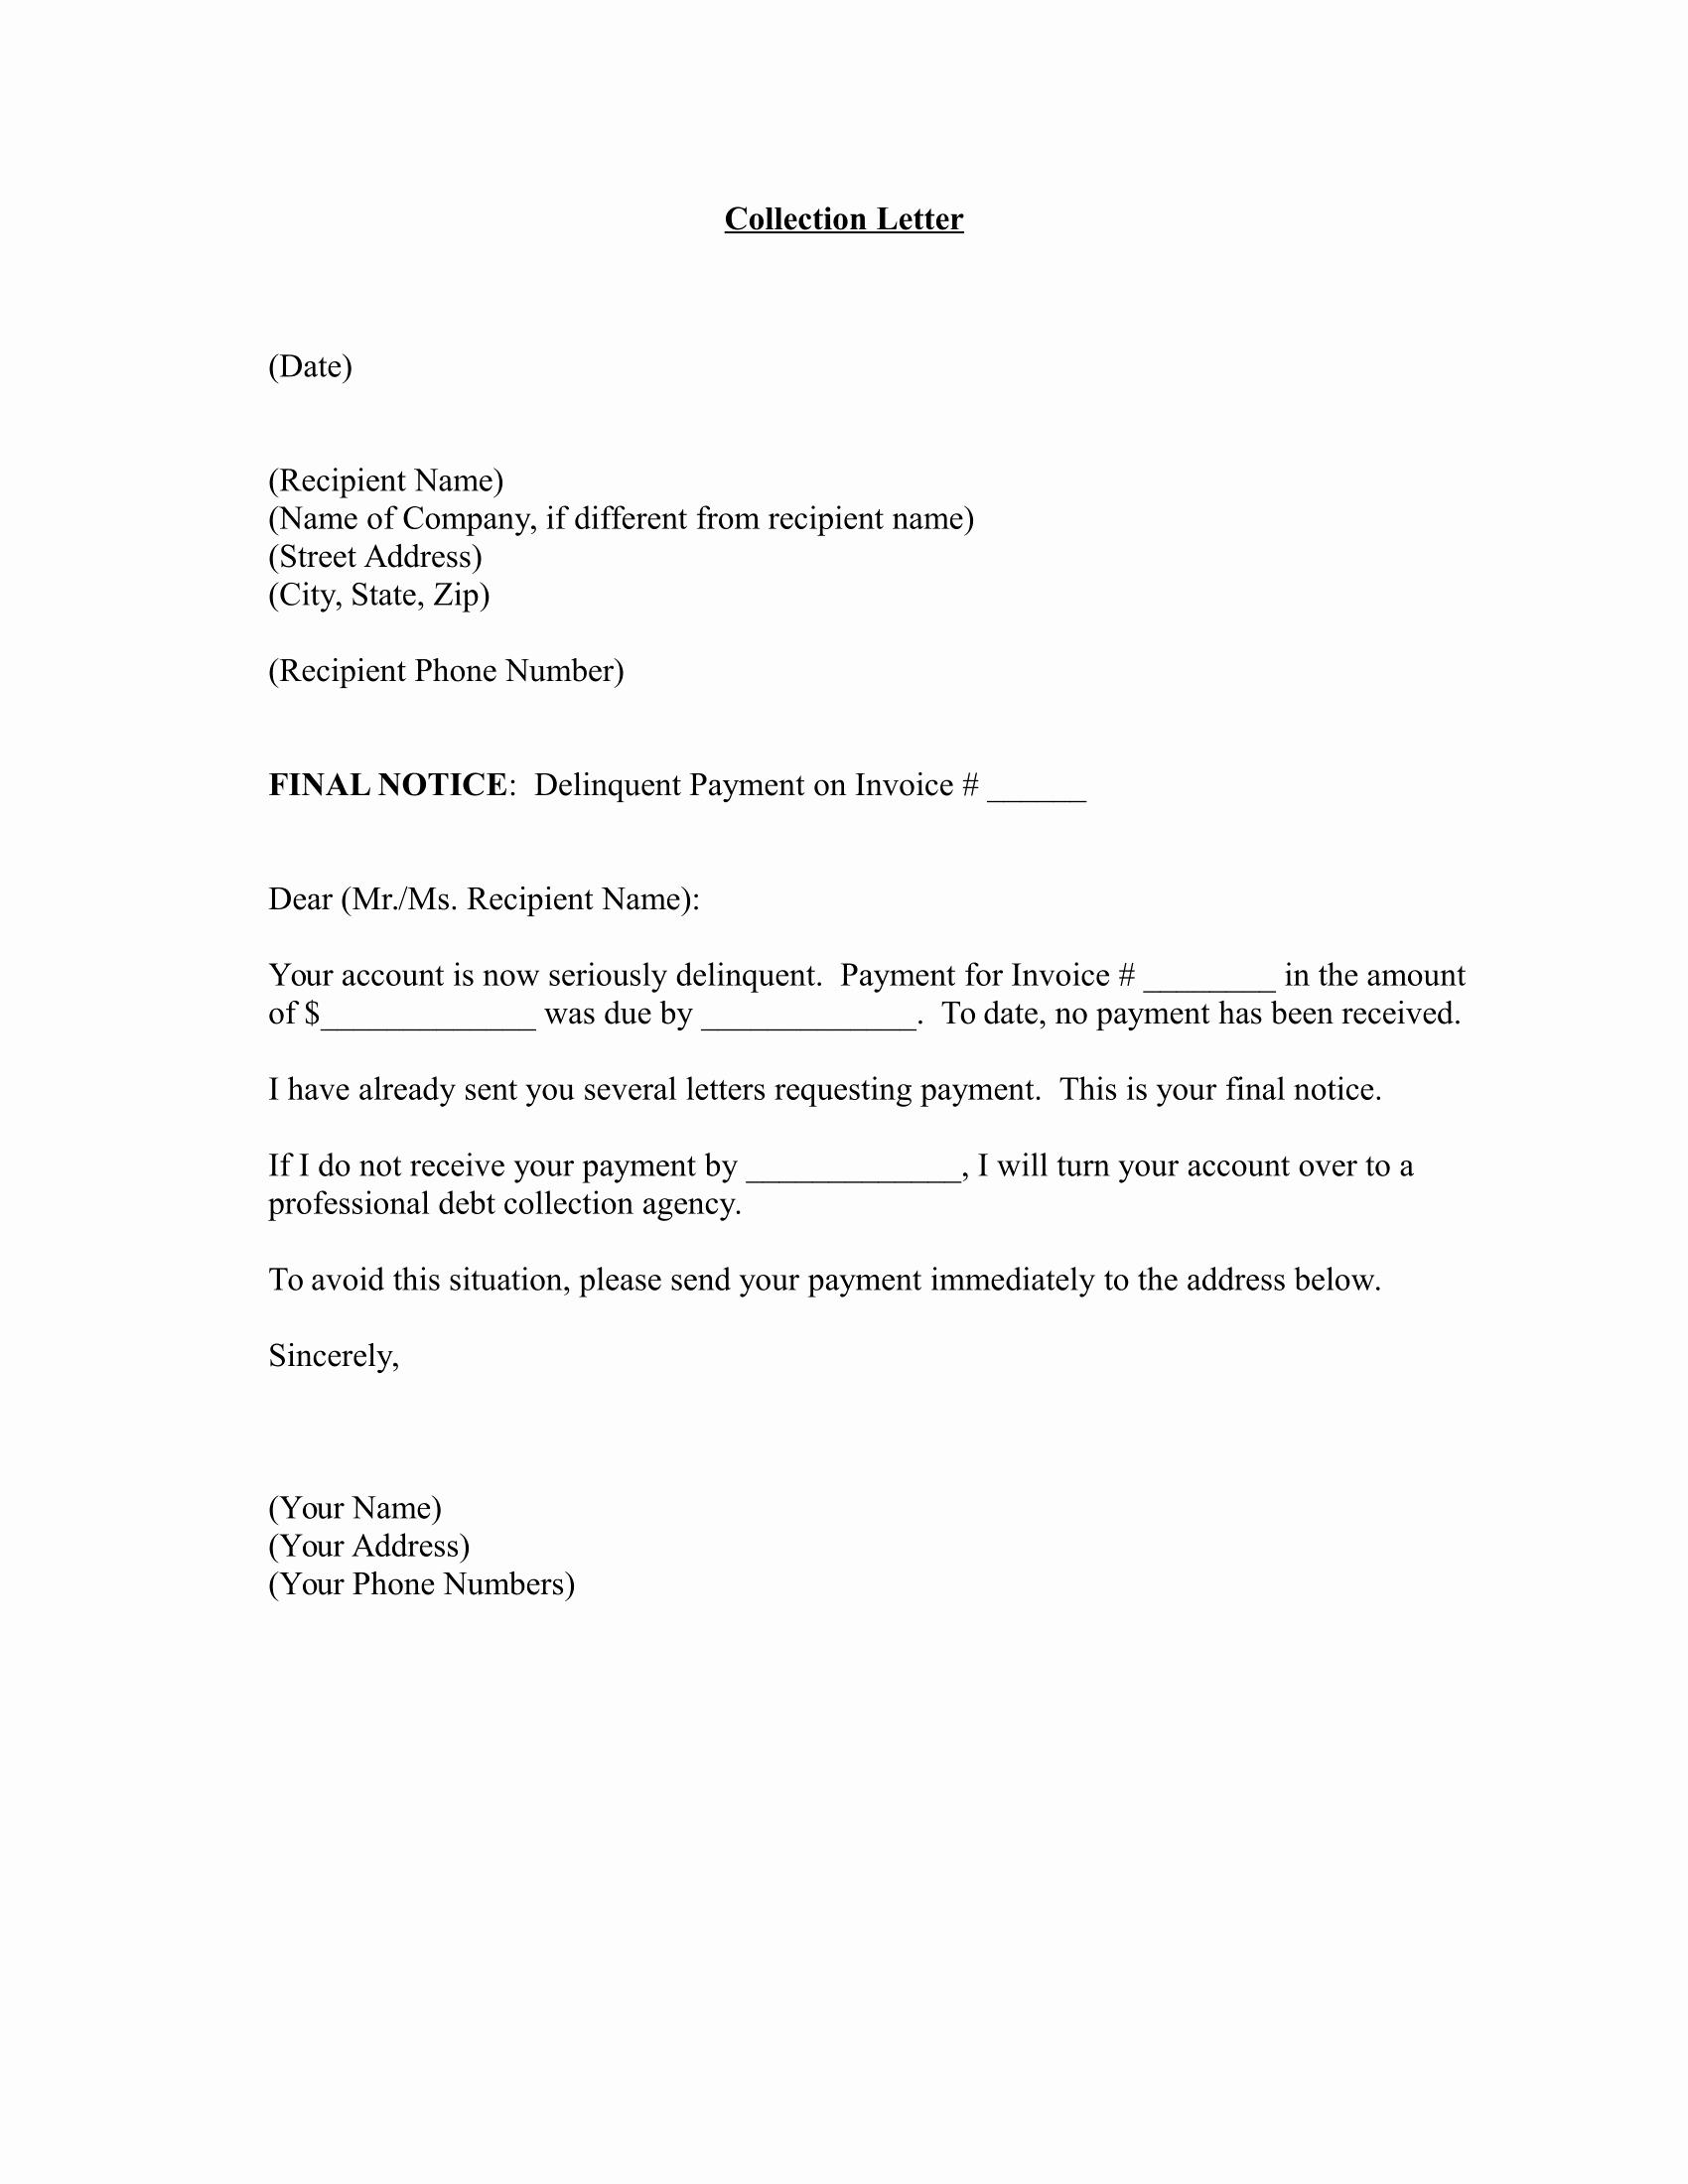 Collection Letter to Customer Best Of Letter formats Download Free Business Letter Templates